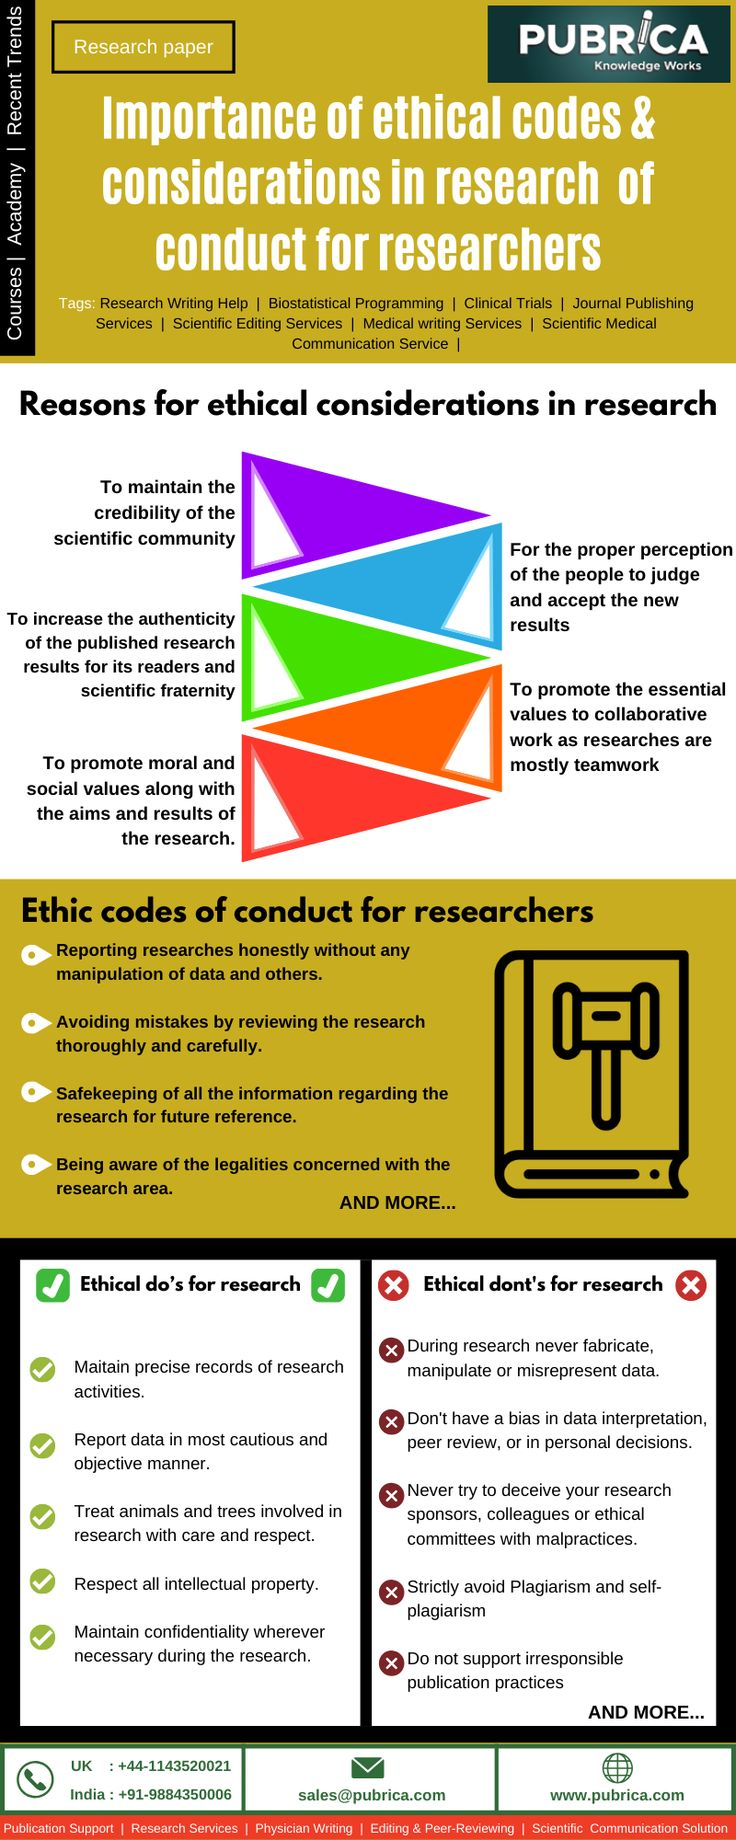 Importance of Ethical Codes & Considerations in Research